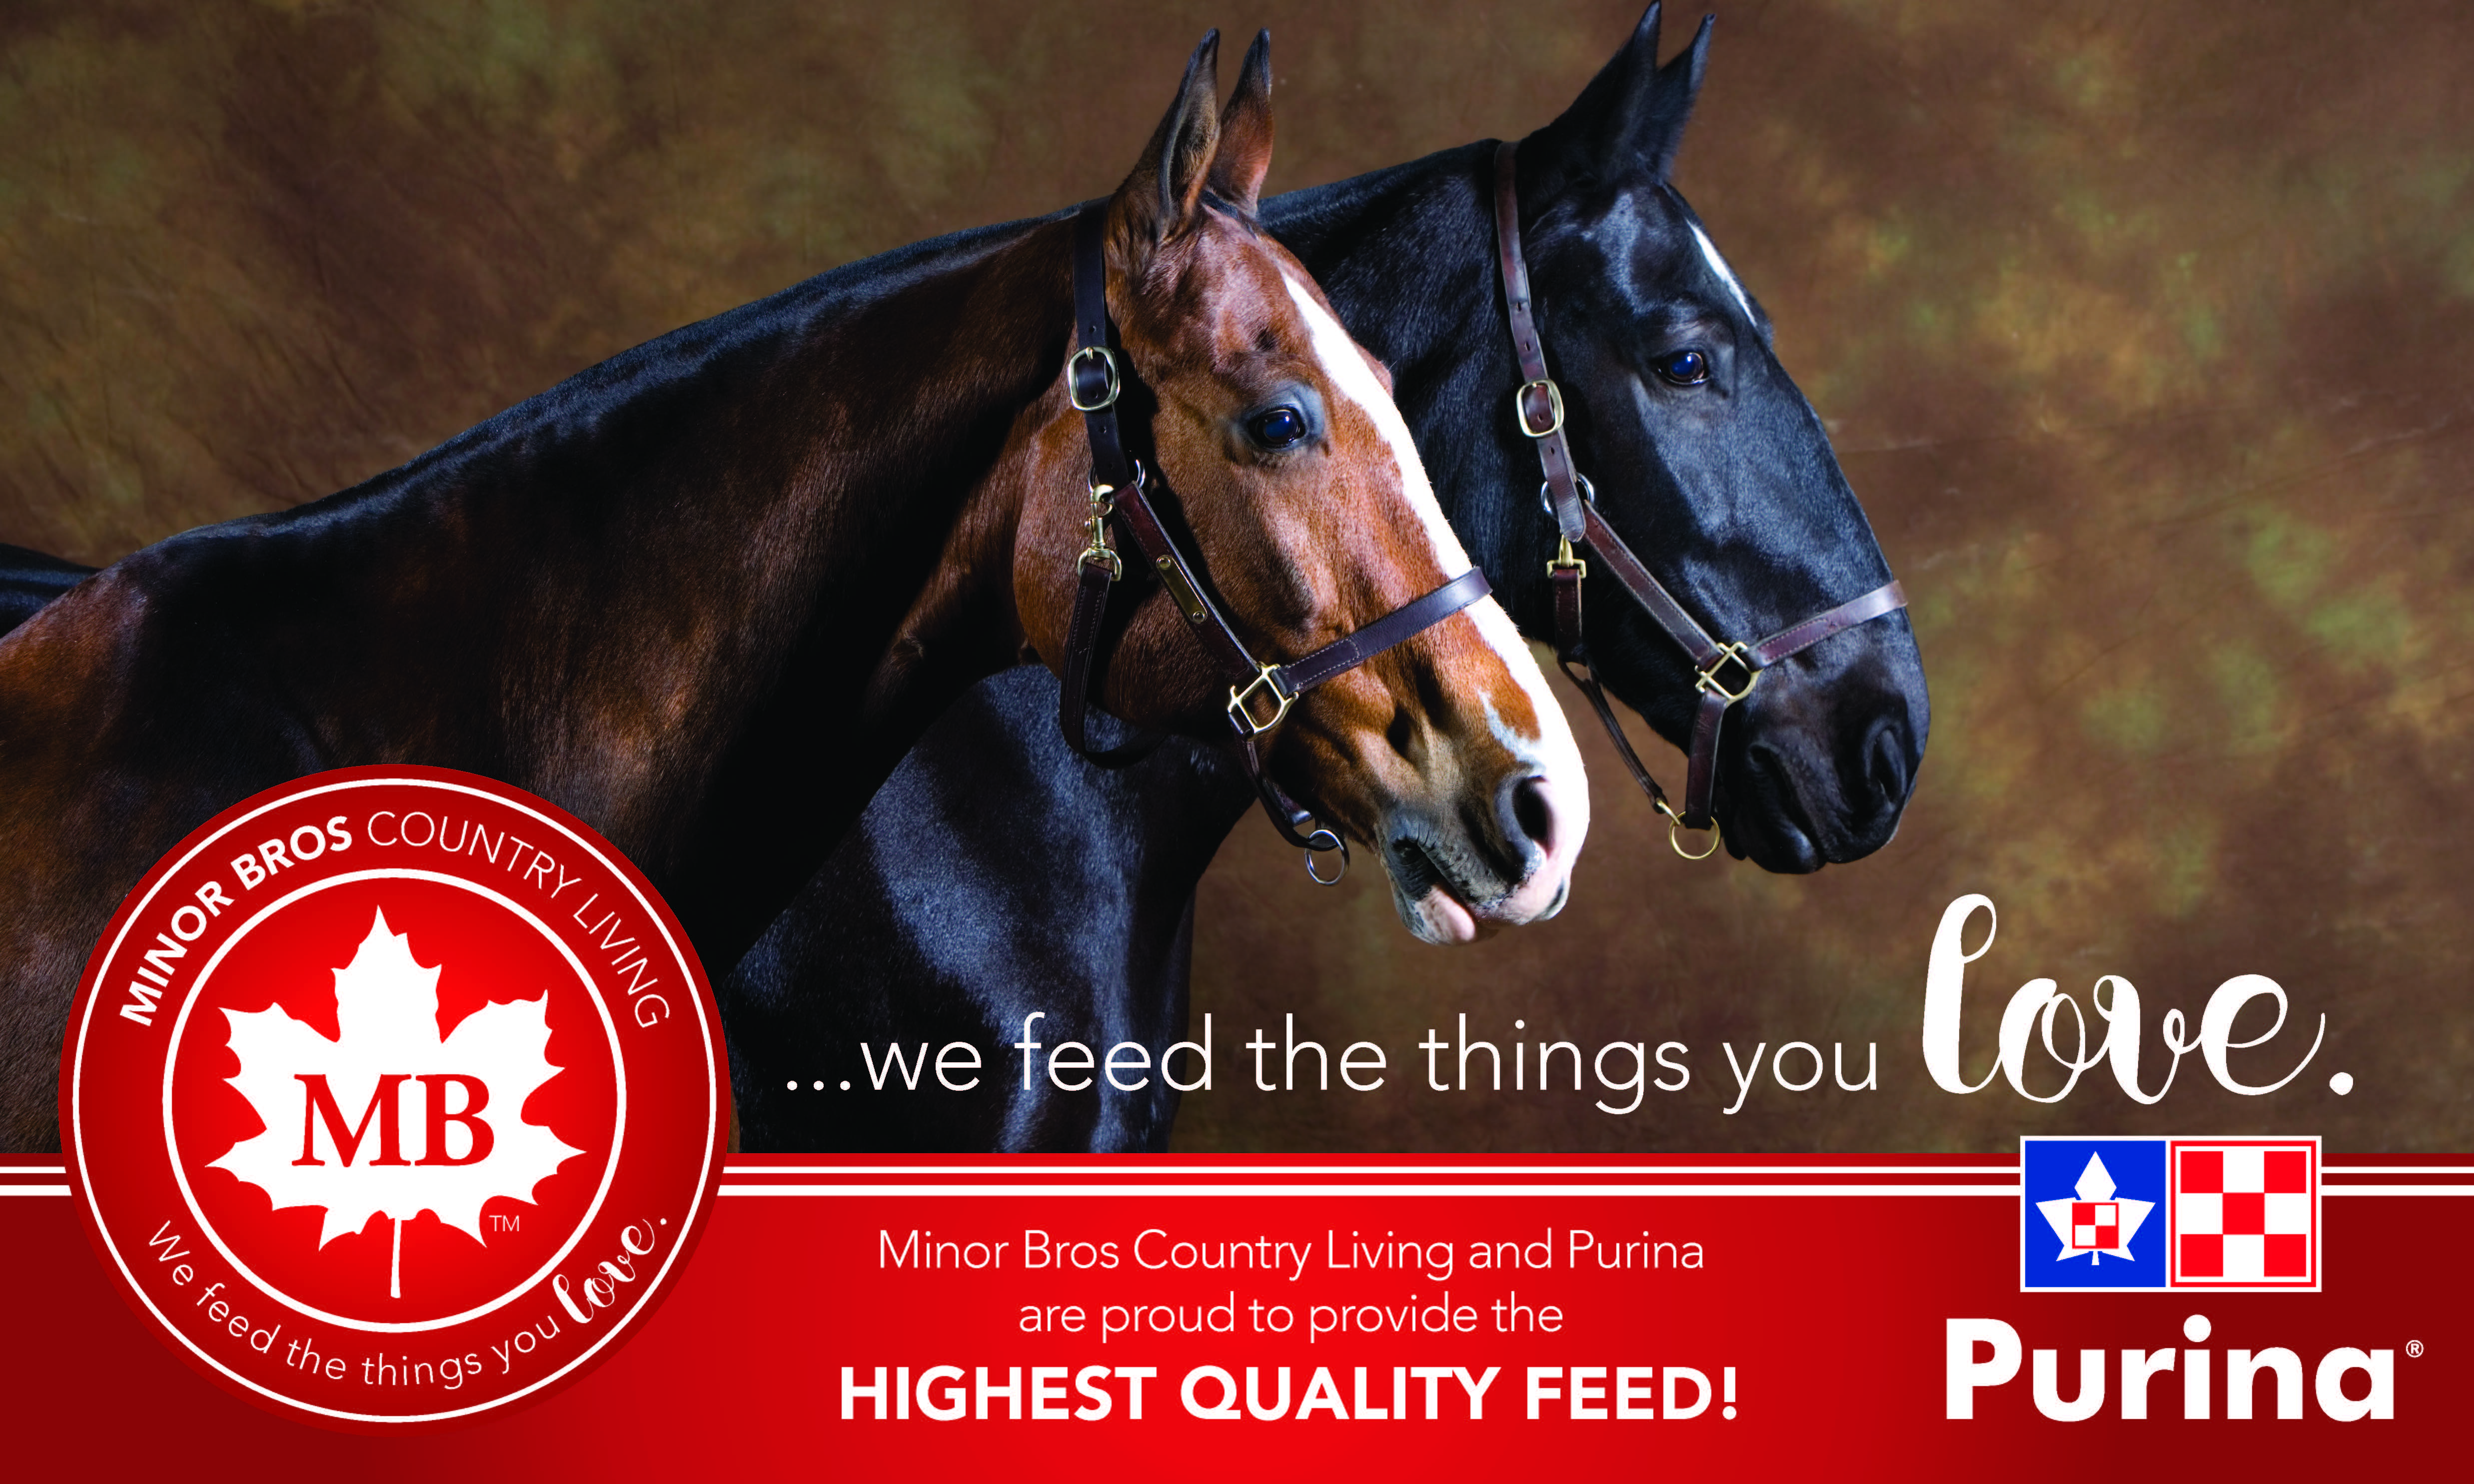 mb country living and purina agri-brands